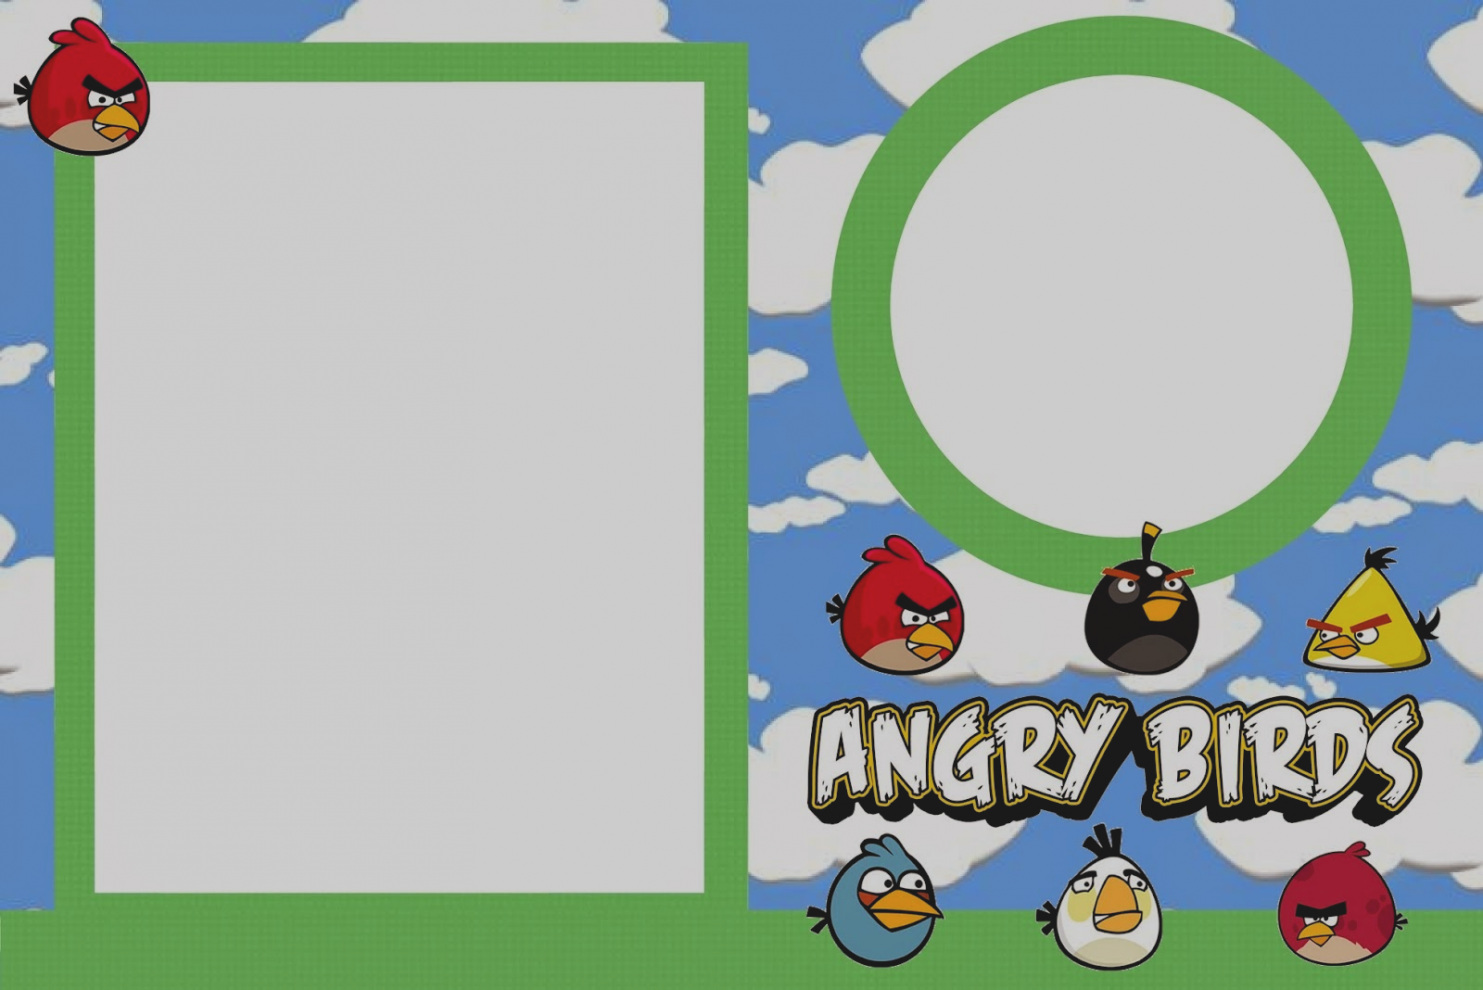 angry birds birthday party invitations printable ; unique-angry-birds-birthday-party-invitations-with-clouds-free-printable-oh-my